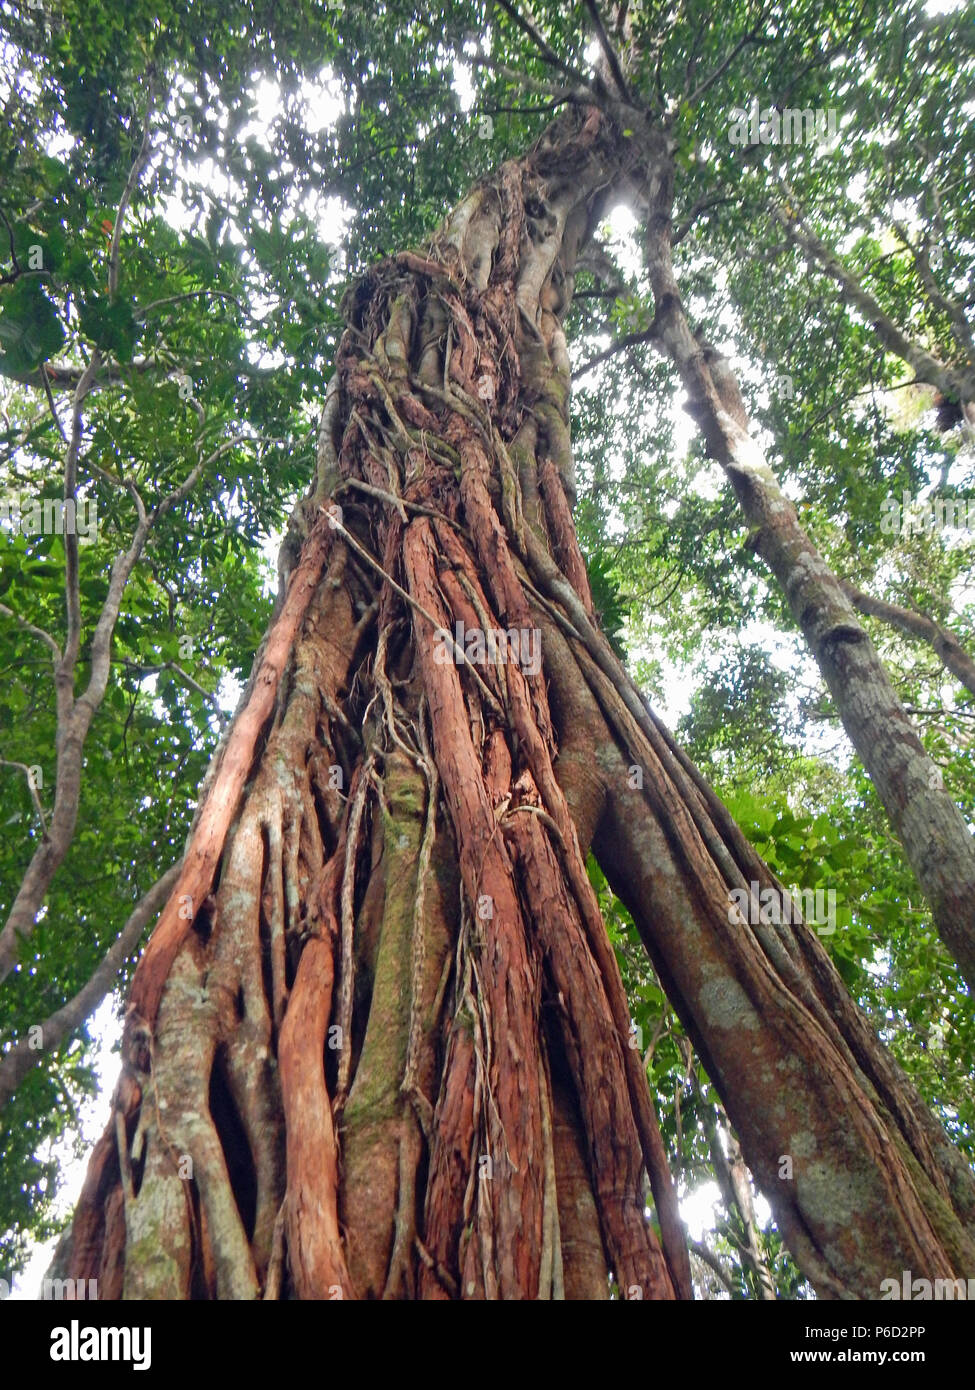 Tall tree in Noumea - Stock Image